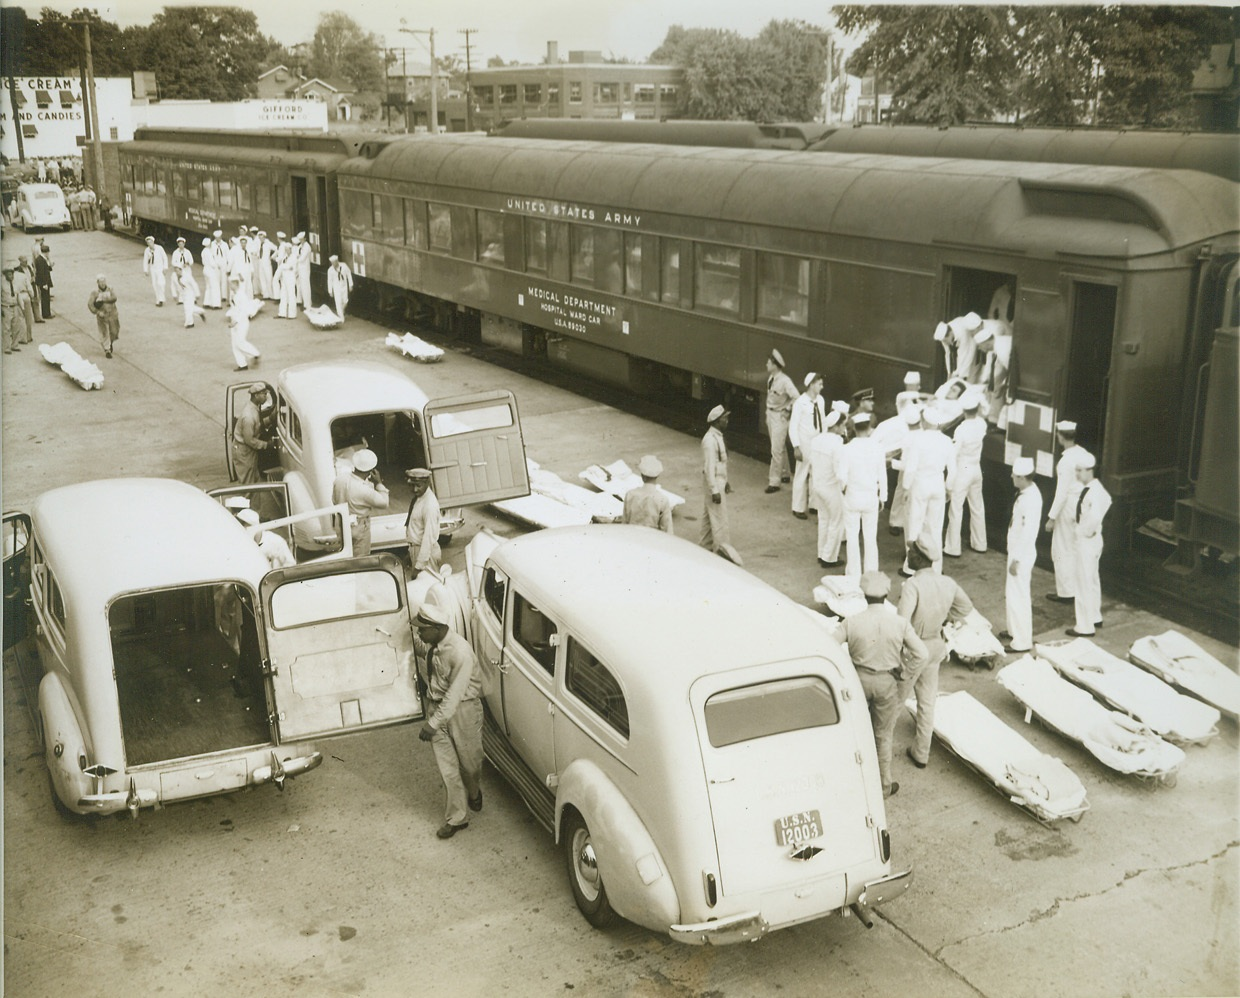 Navy's Normandy Wounded Brought Home, 8/2/1944. WASHINGTON, D.C. -- With ambulances and stretchers waiting, some of the one hundred and twenty nine Navy men wounded in Normandy are lifted from a hospital train which carried them to Silver Springs where they will receive further treatment in the Naval Medical Hospital. These Naval heroes were brought across the Atlantic from France in a hospital ship. Credit: (ACME);